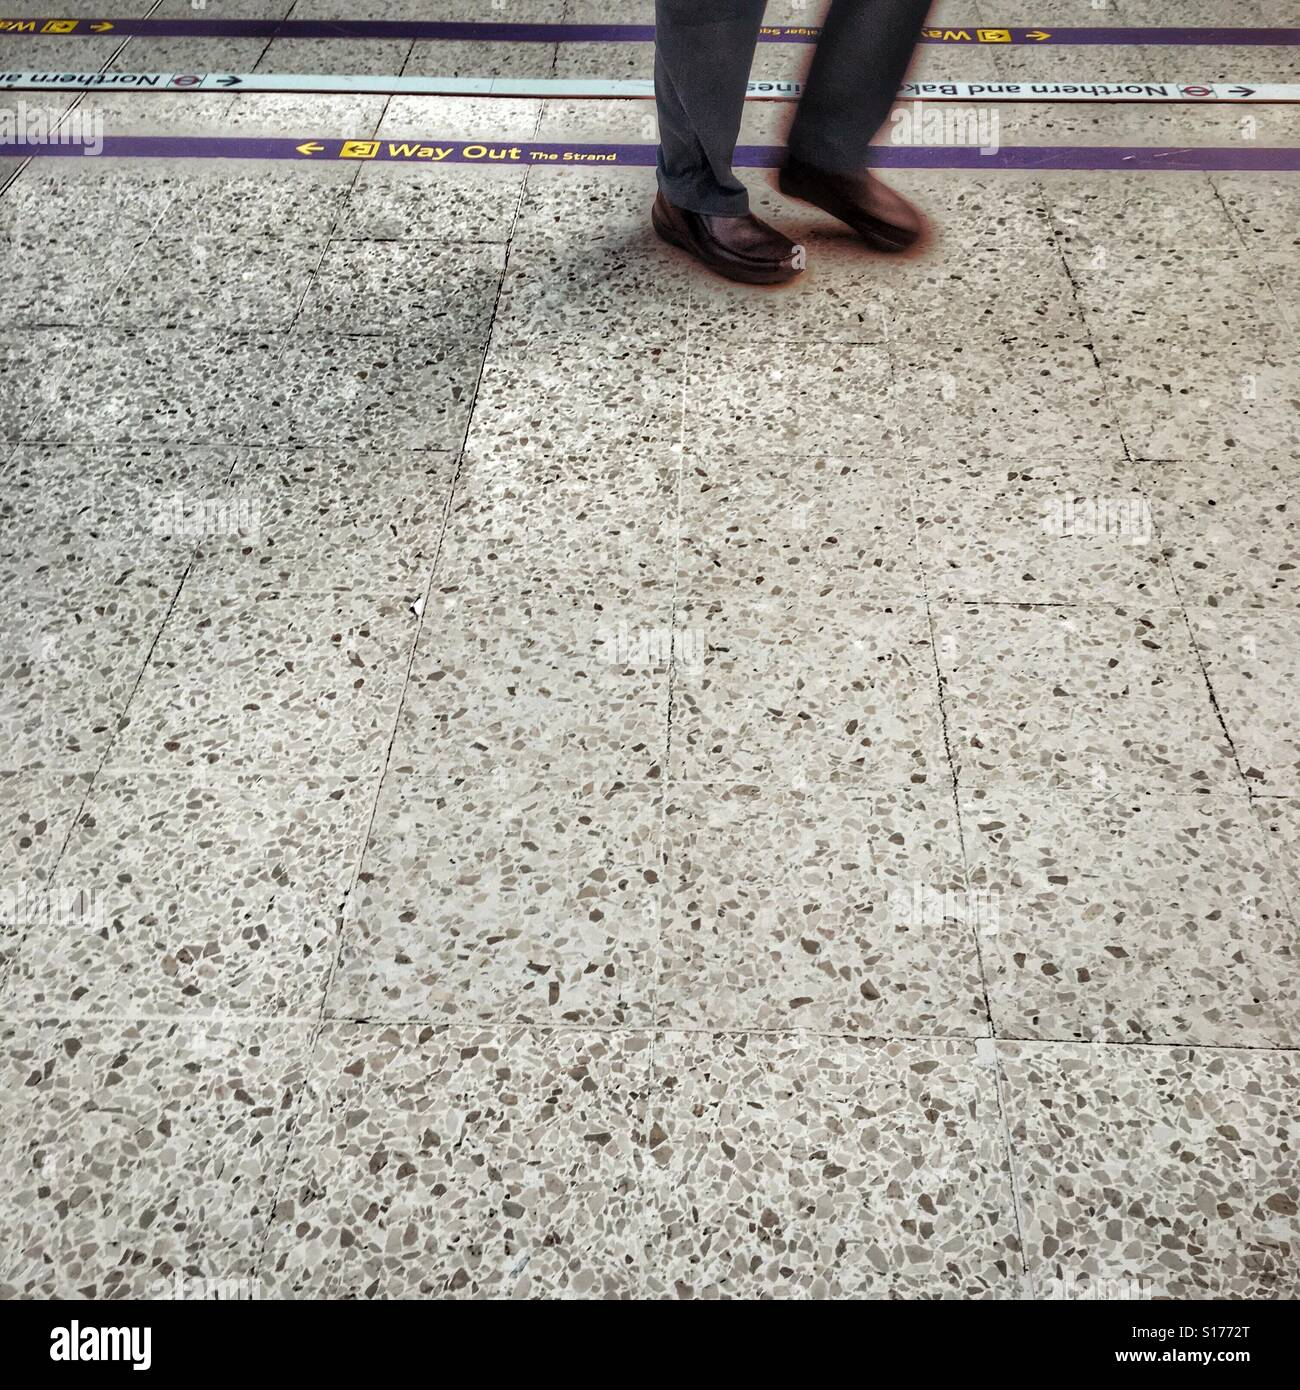 Man's feet walking across a train station concourse - Stock Image